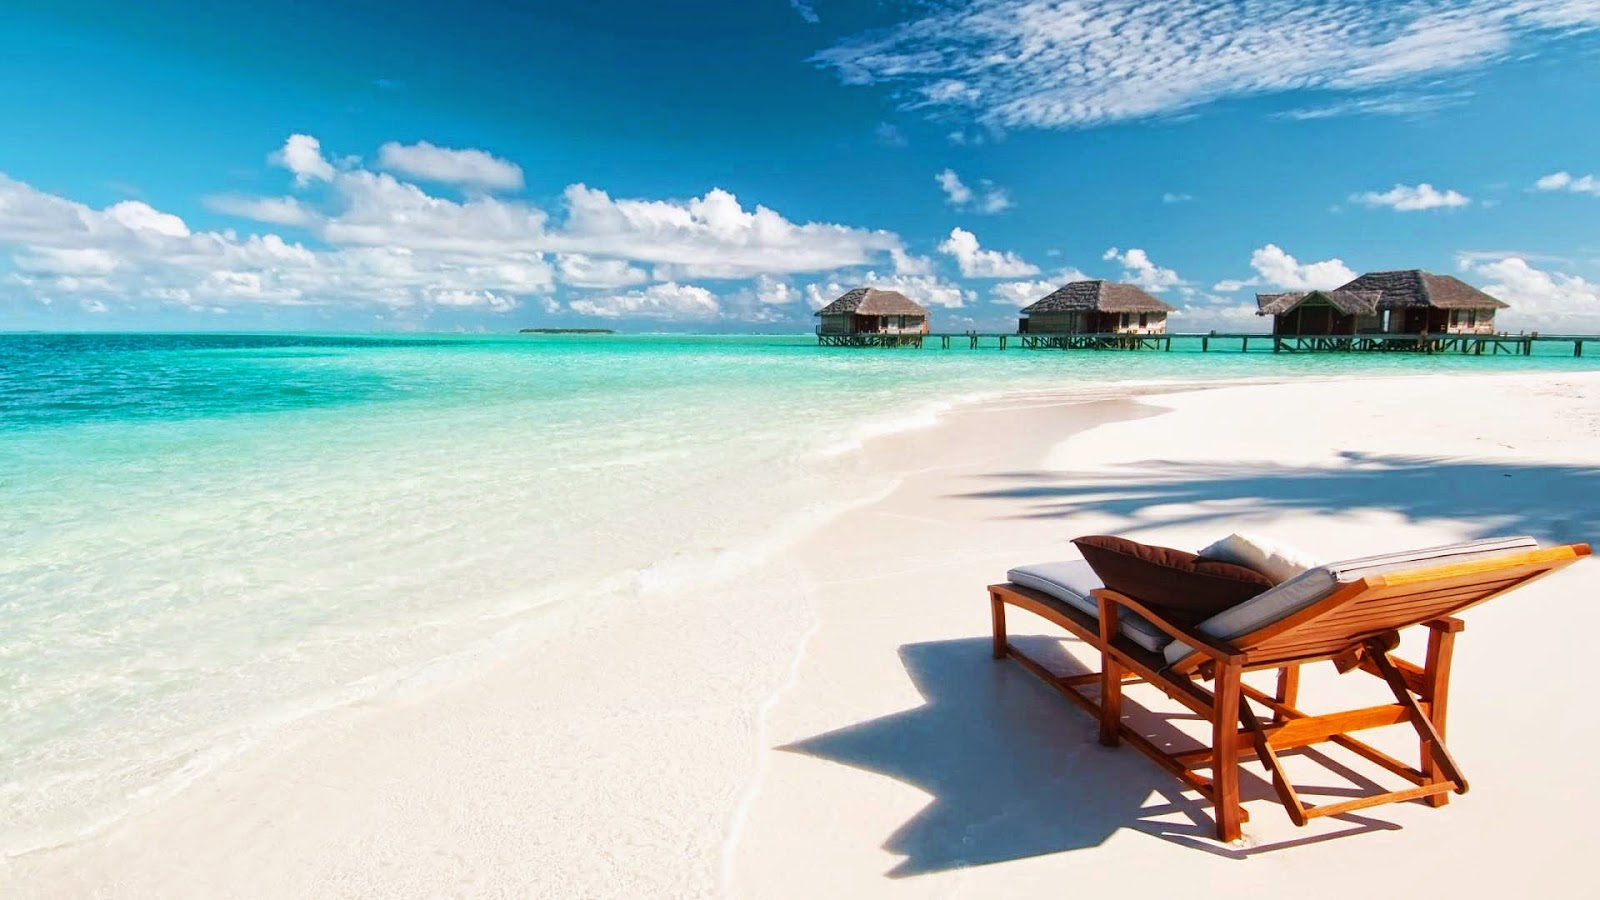 Best Tour Deals Cites Maldives as The Finest Beach Destination in The World